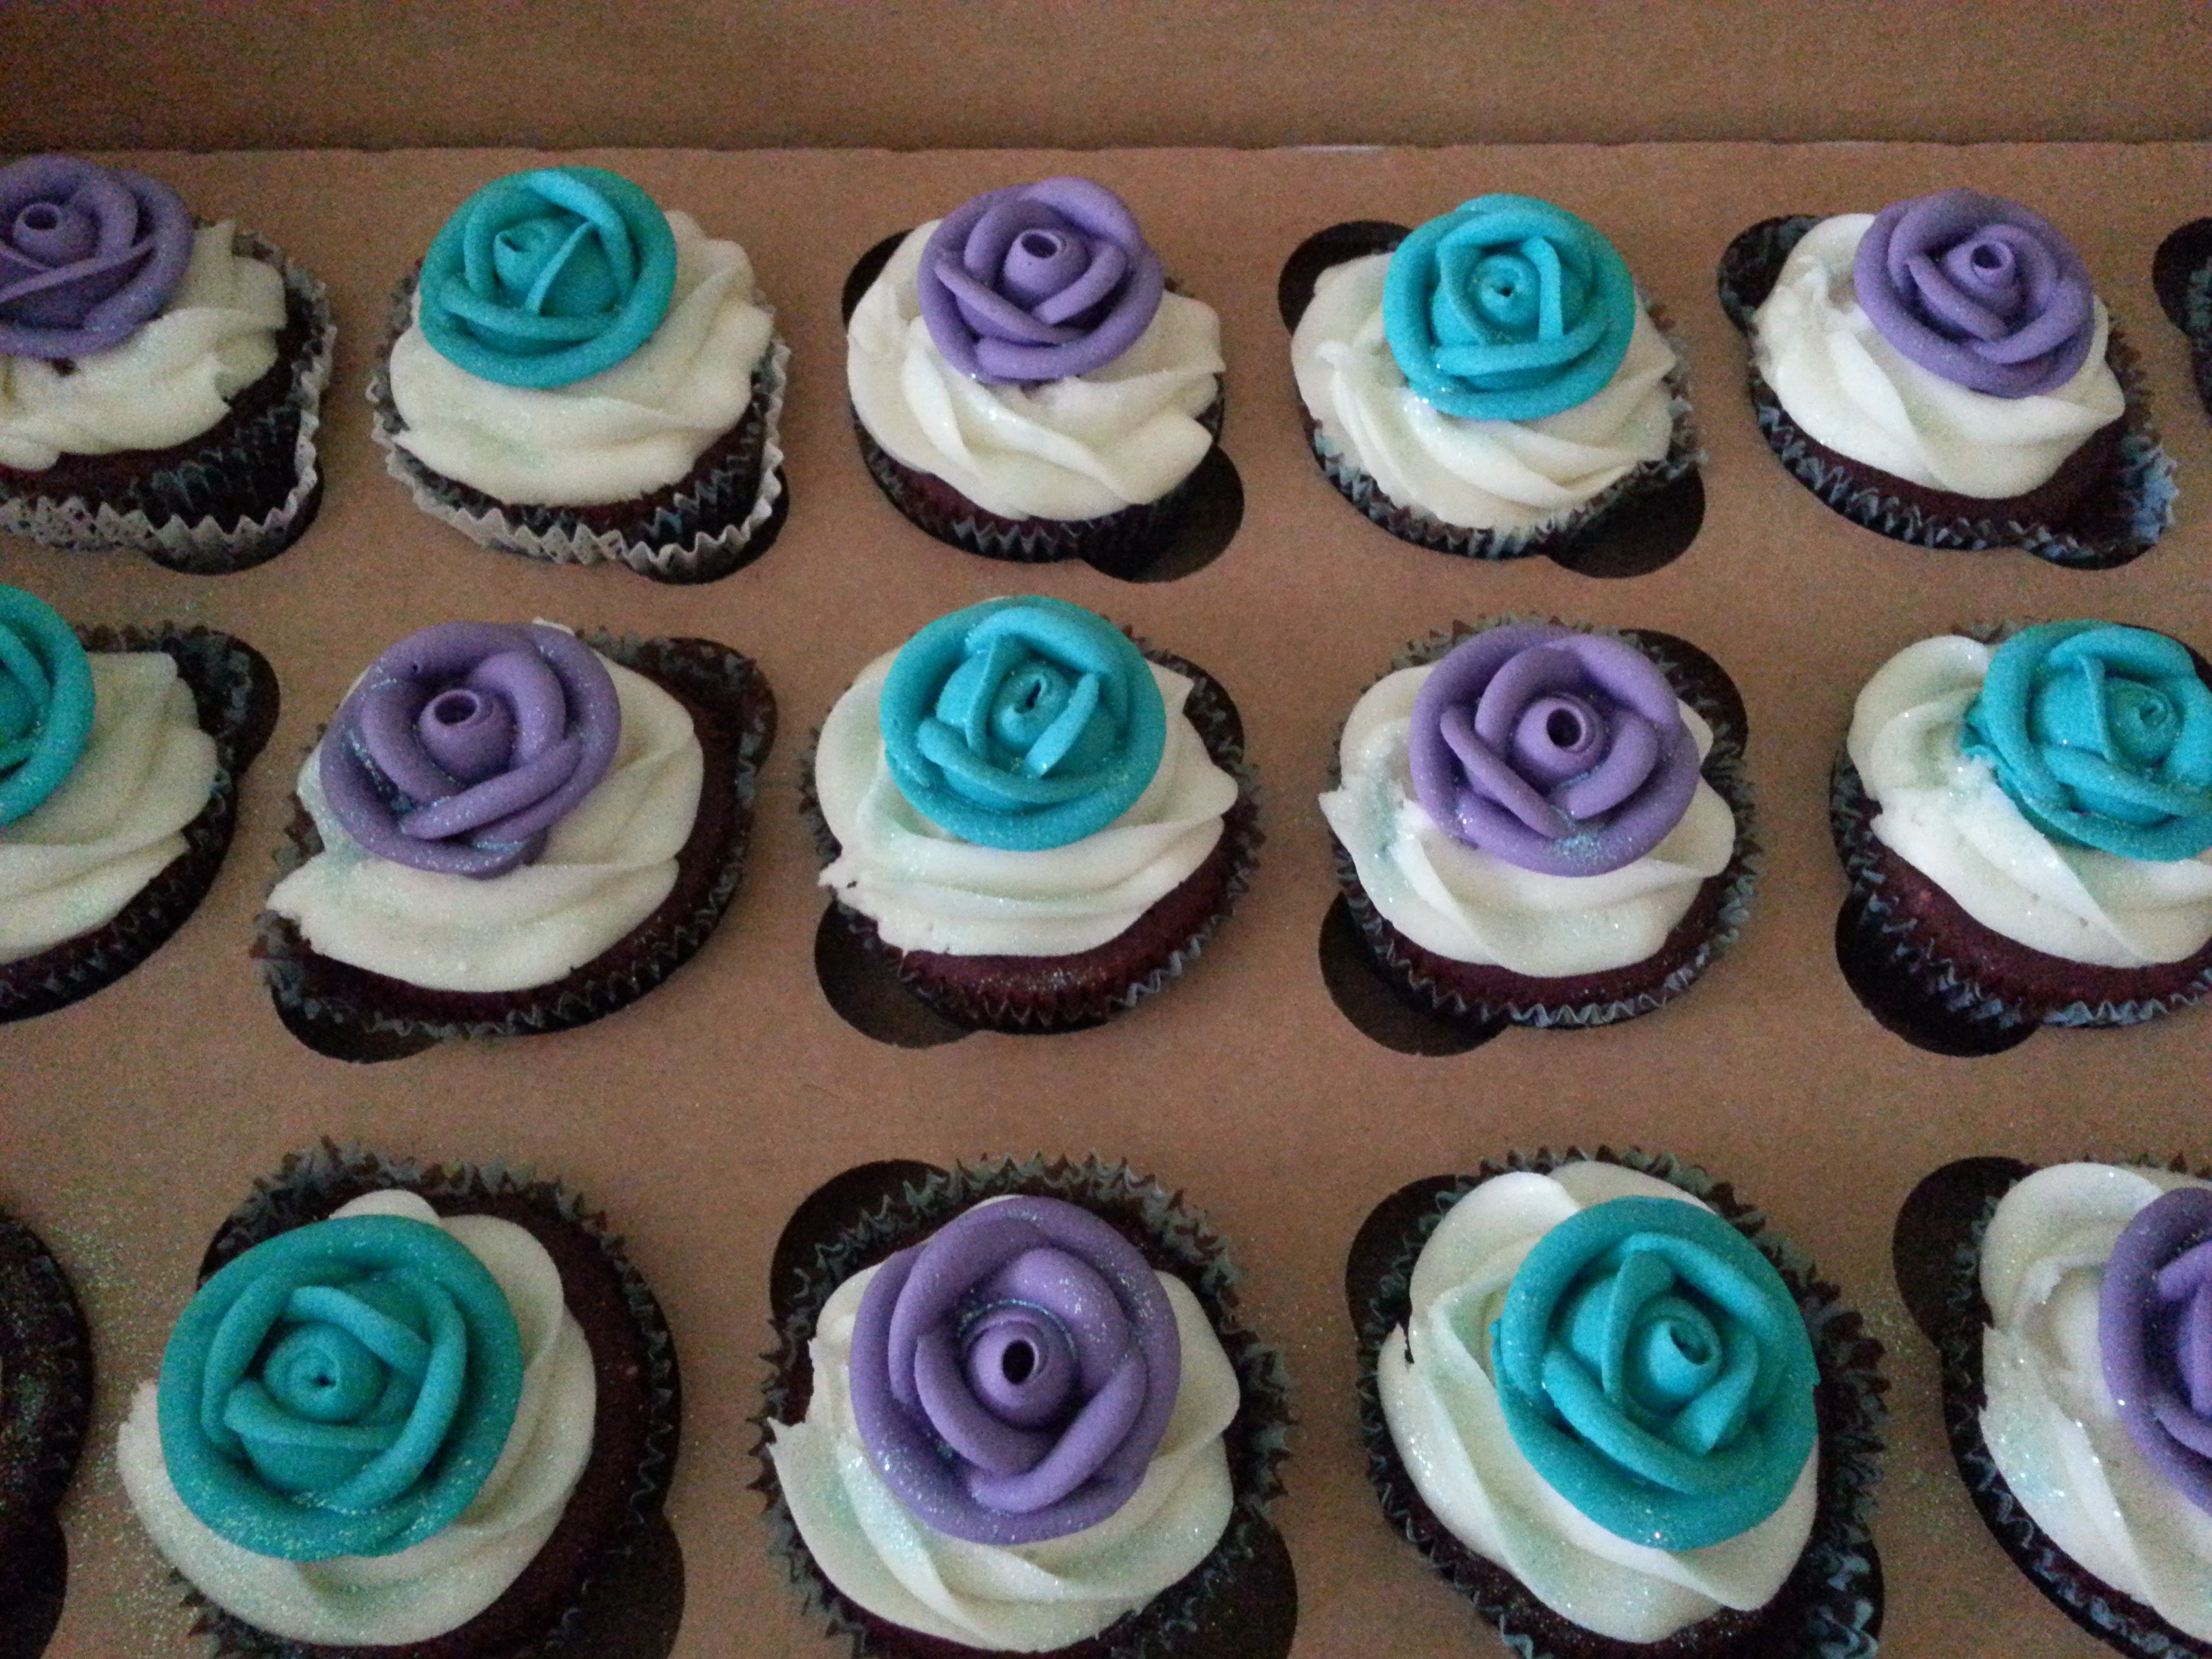 teal and purple themed cupcakes for my daughter's communion